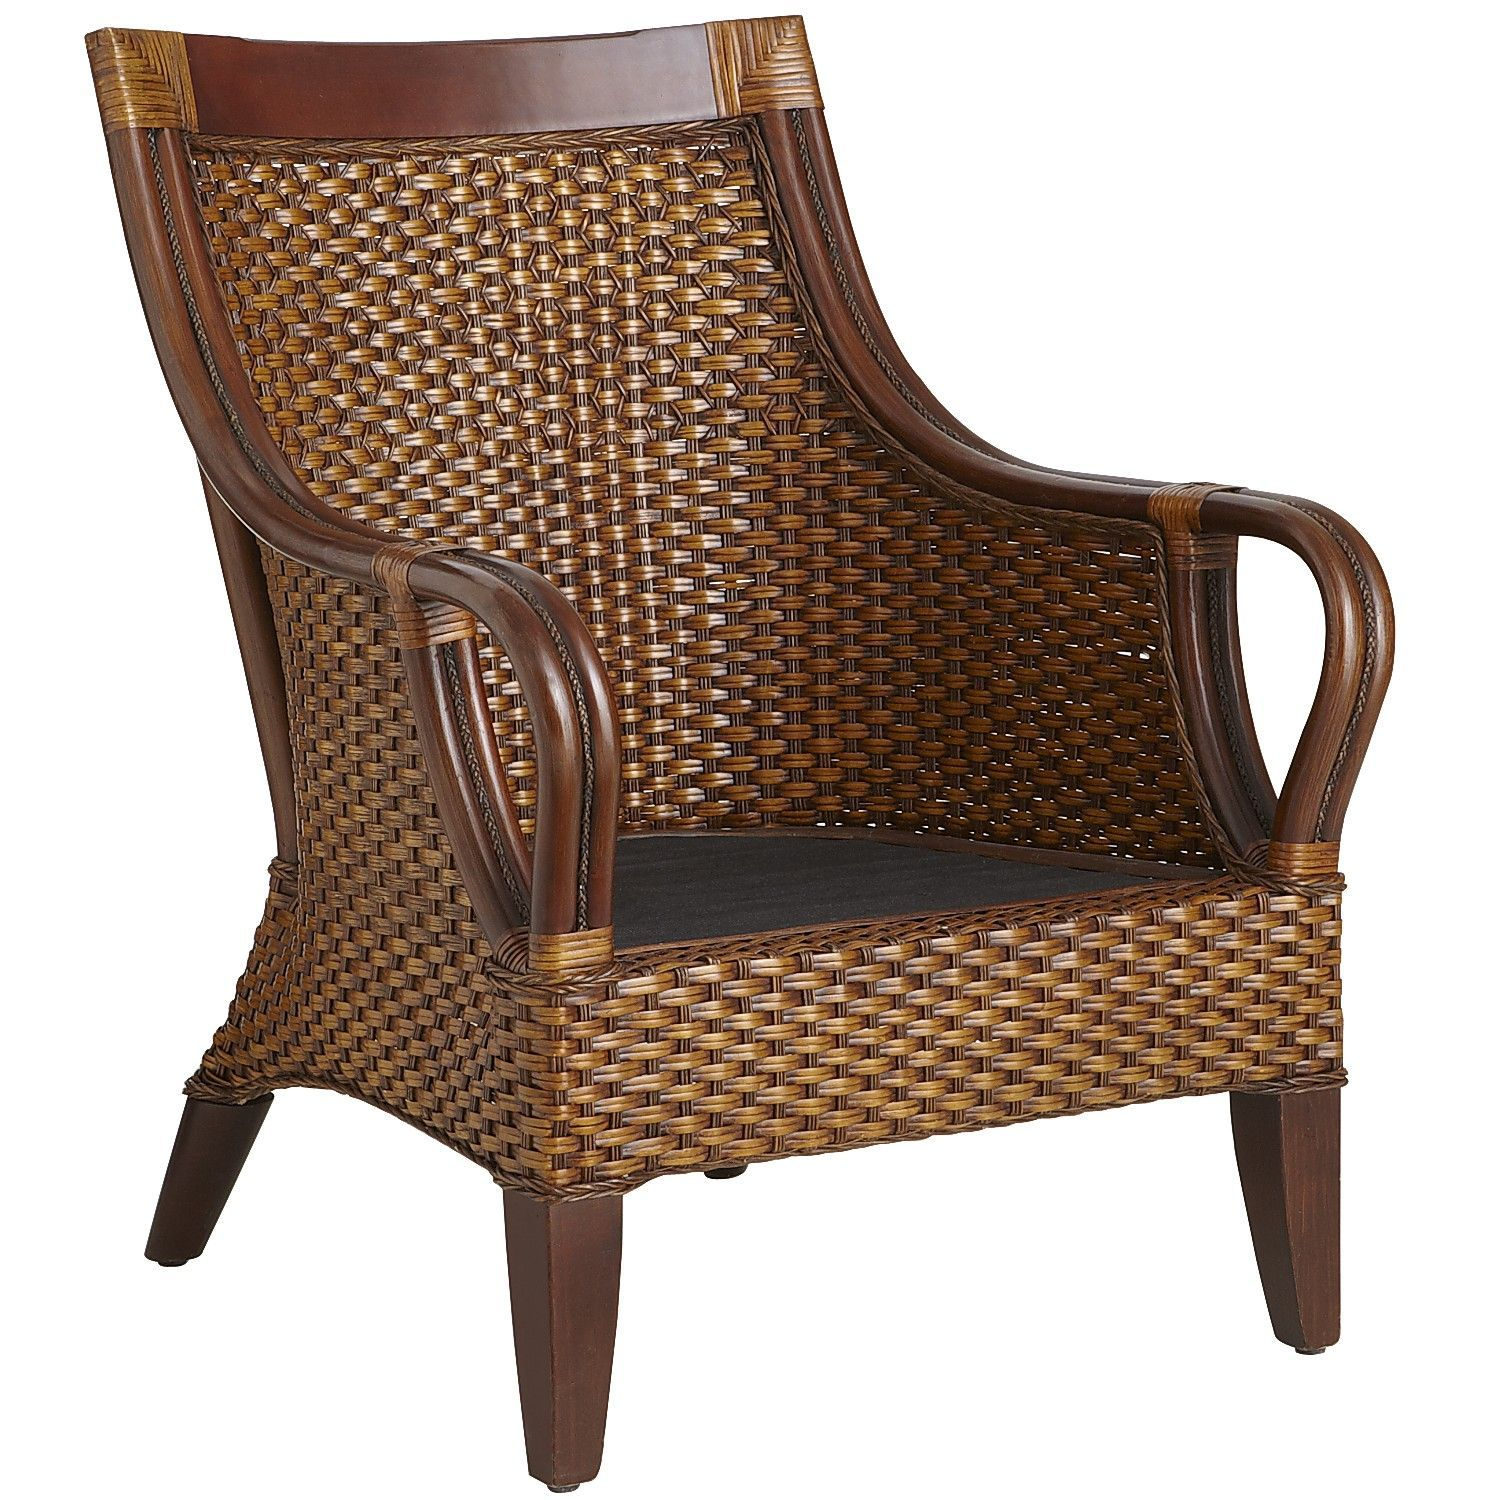 temani brown wicker chair rattan pine and west indies decor